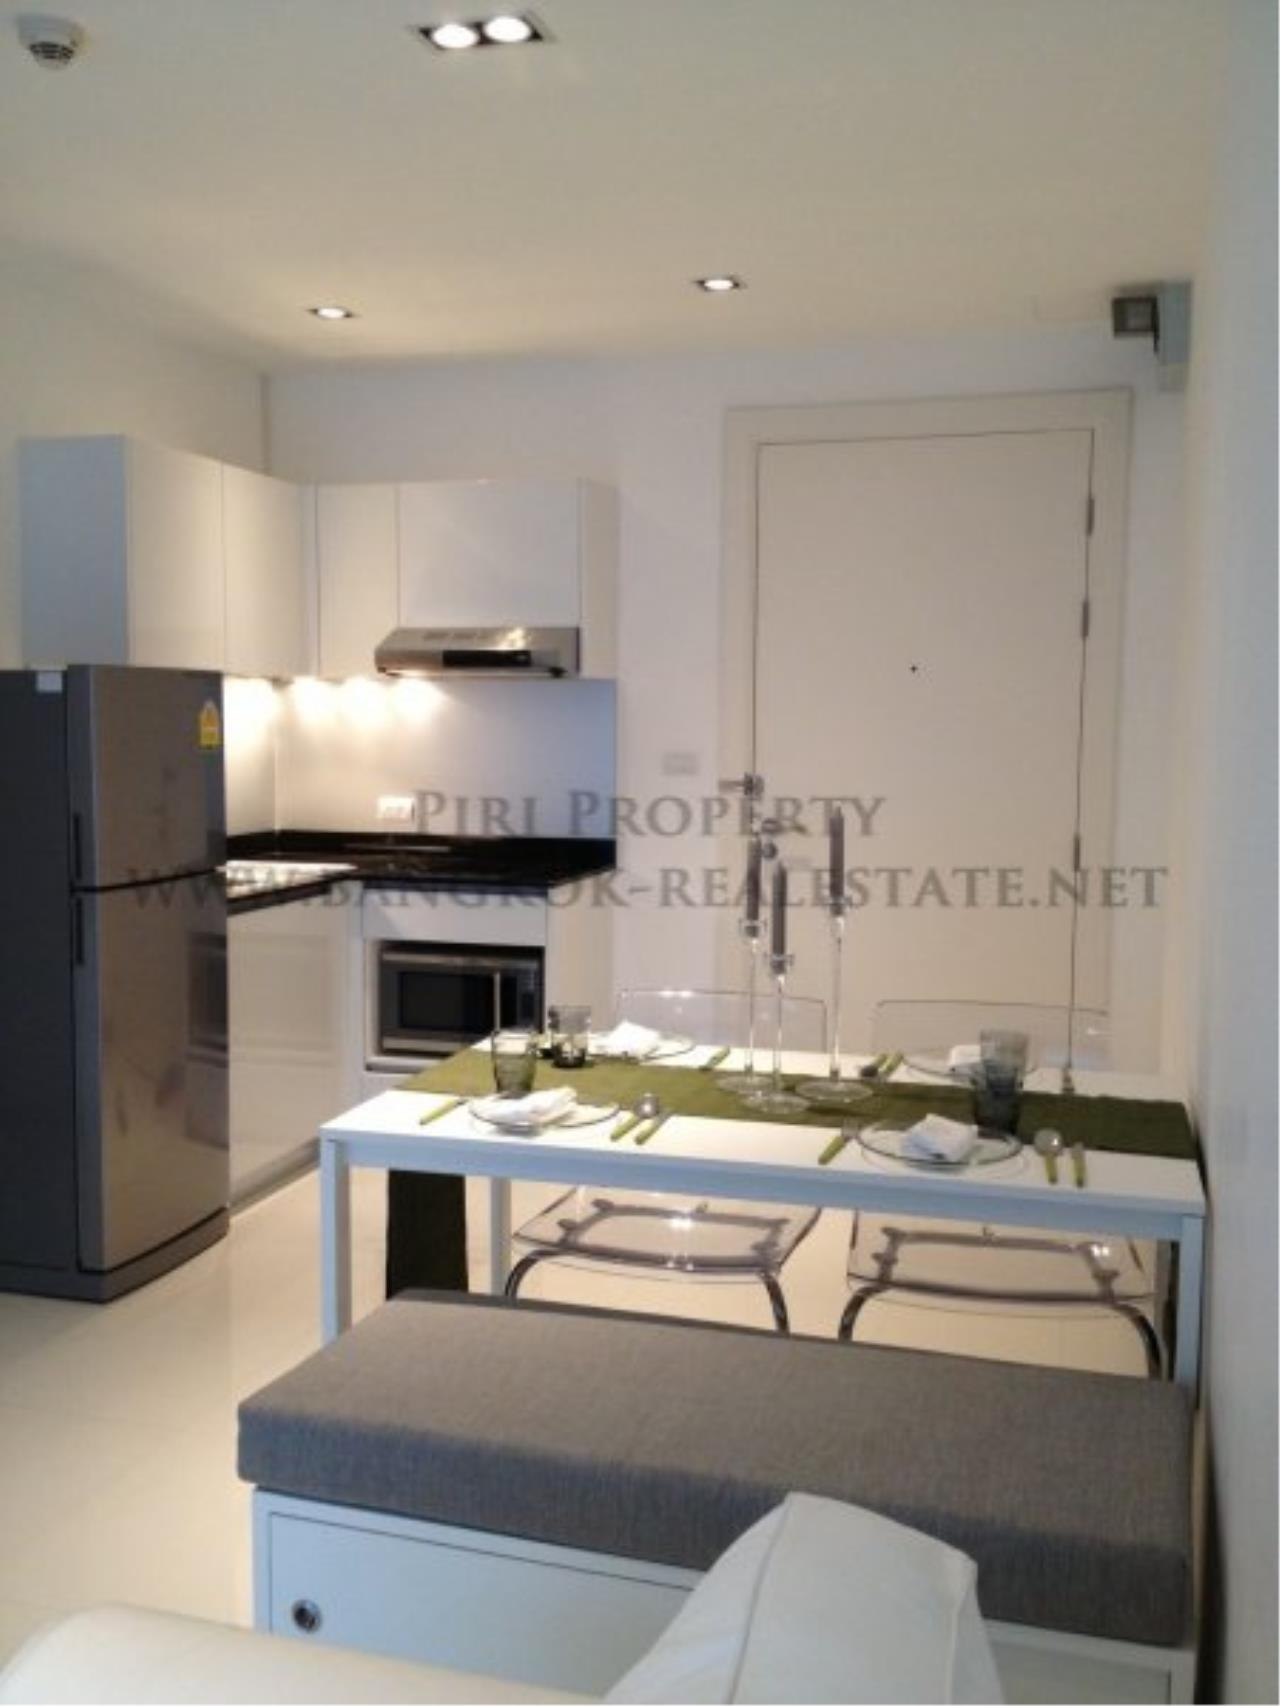 Piri Property Agency's Nice 2 Bedroom Condo in Asoke - 70 SQM - Fully furnished 2